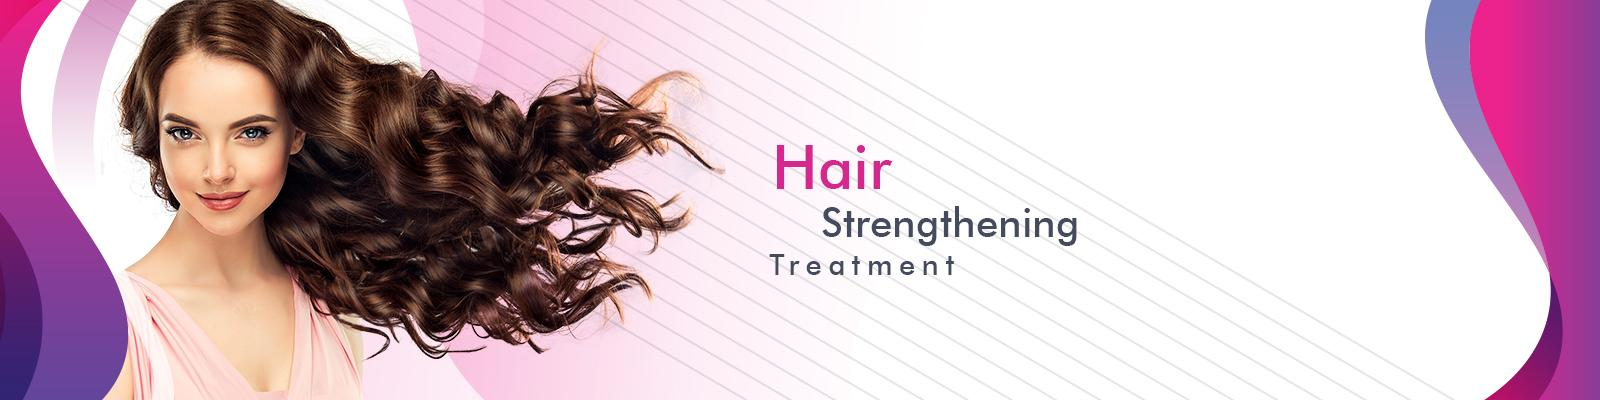 Hair Strengthening & Healthy Hair Treatment